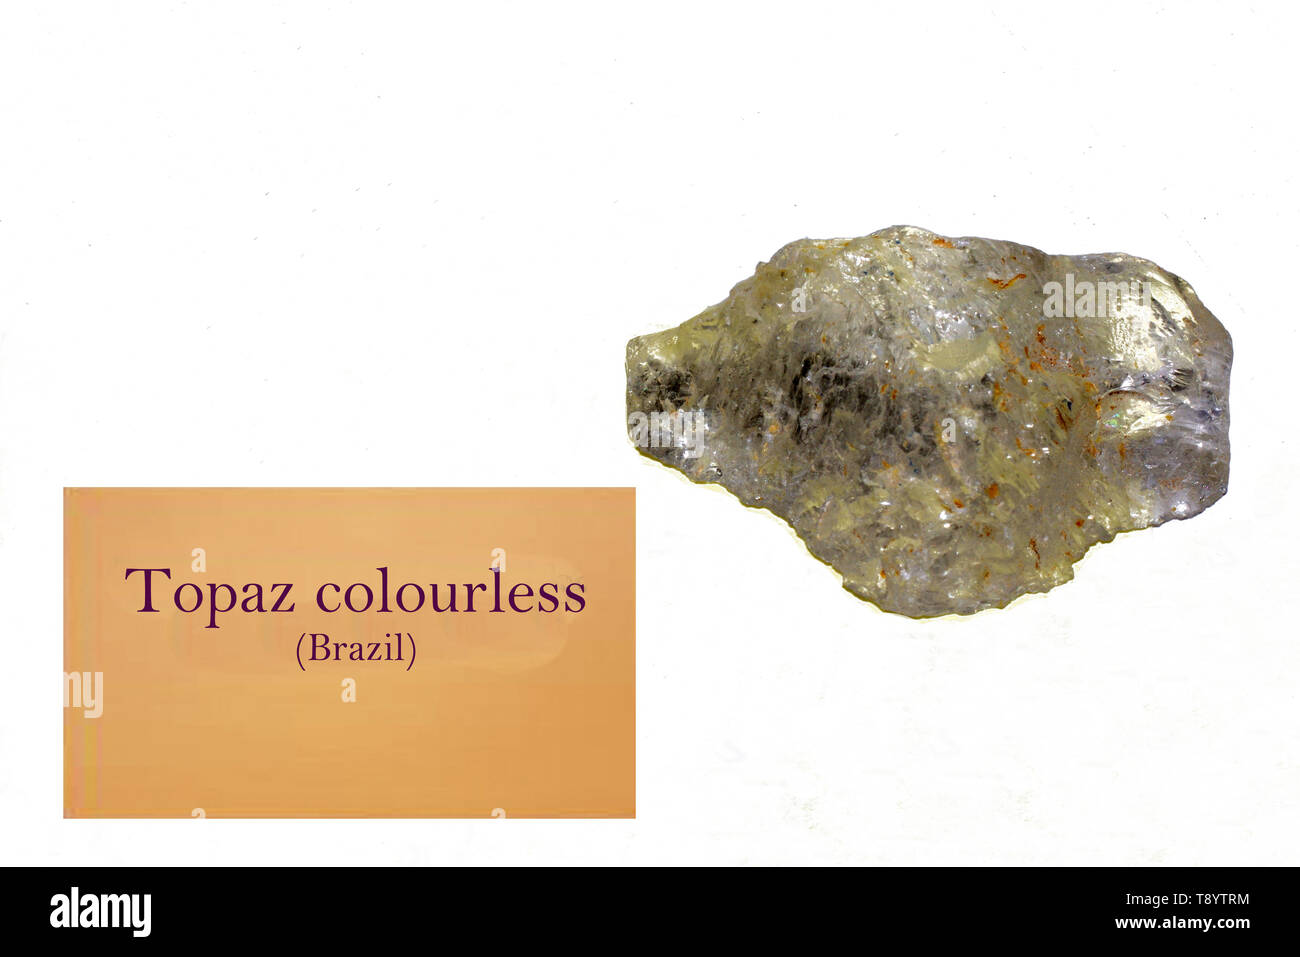 Topaz colourless rock of Brazil close-uo - Stock Image